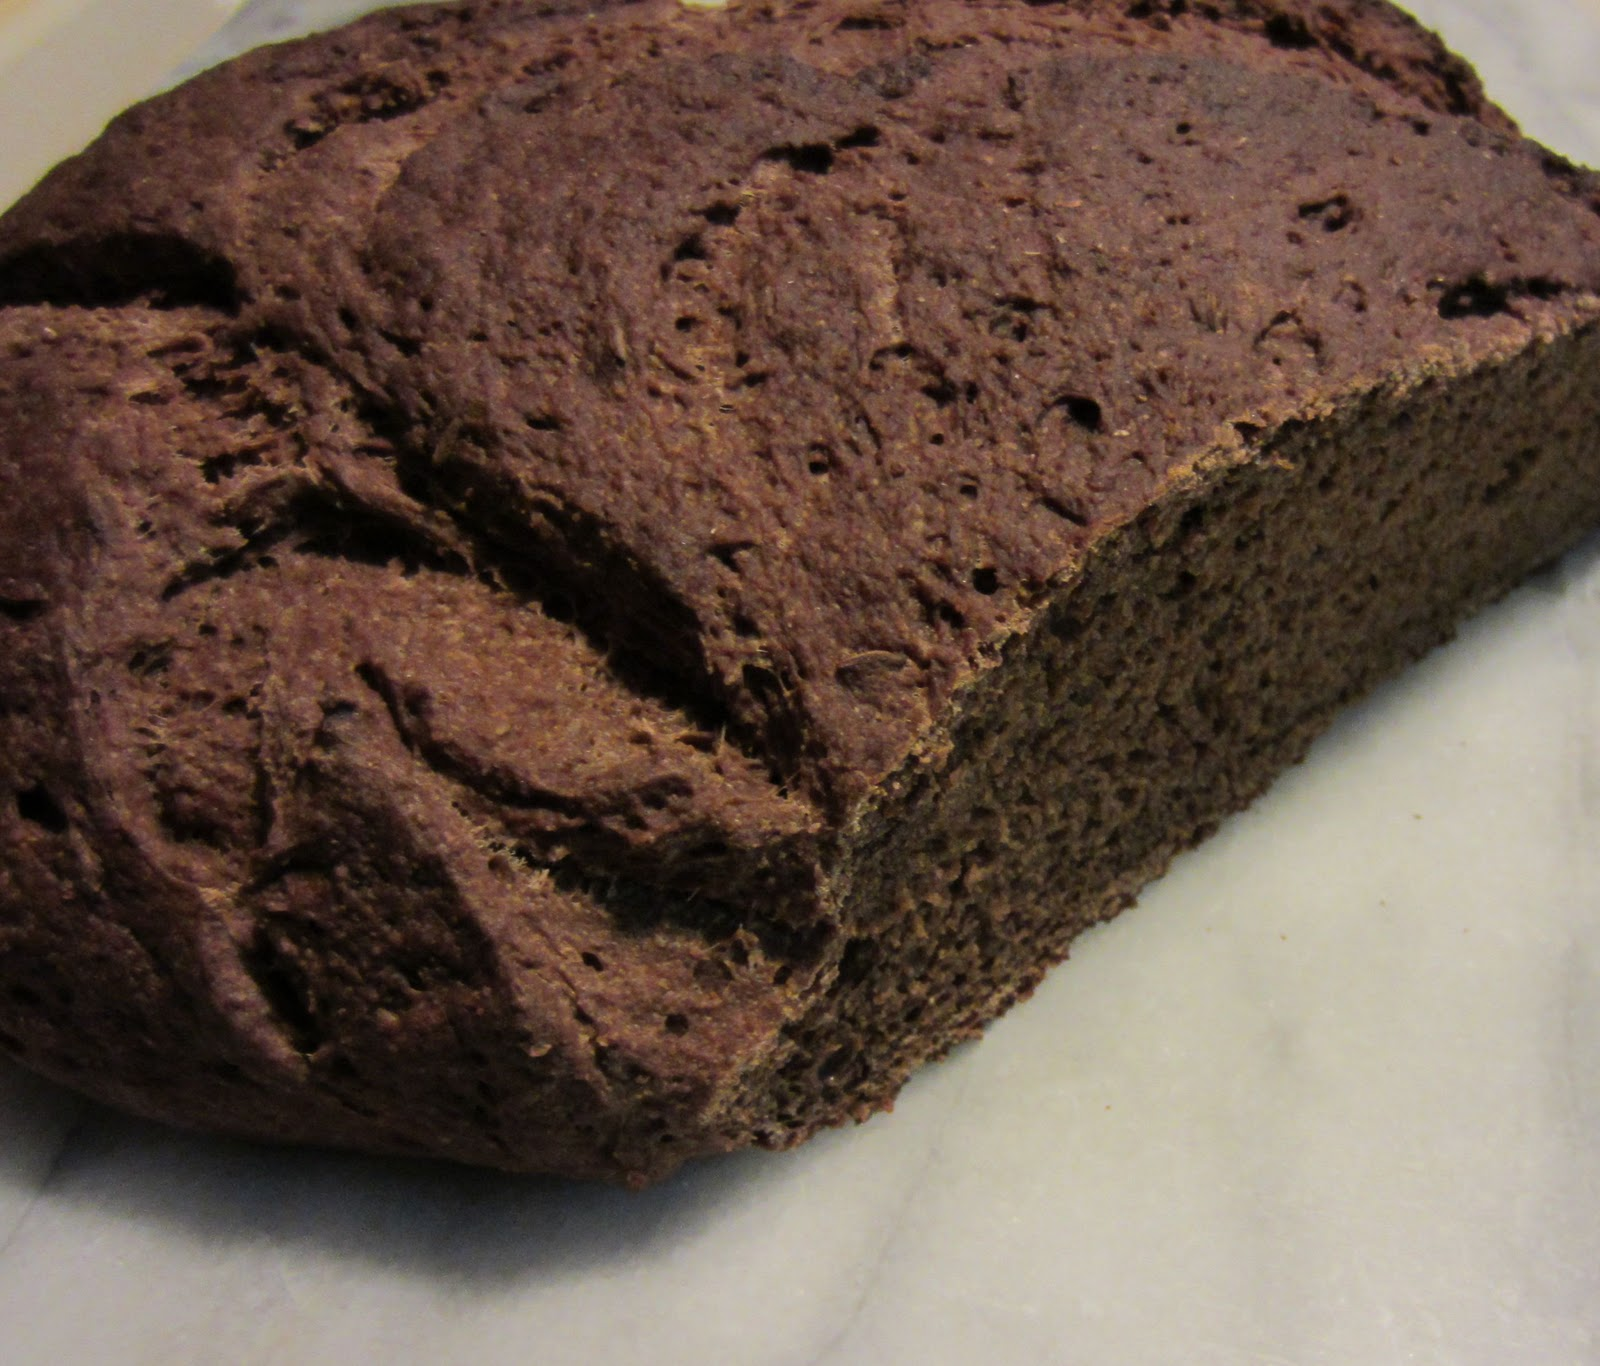 Minka Cooks Macedonian Black Bread